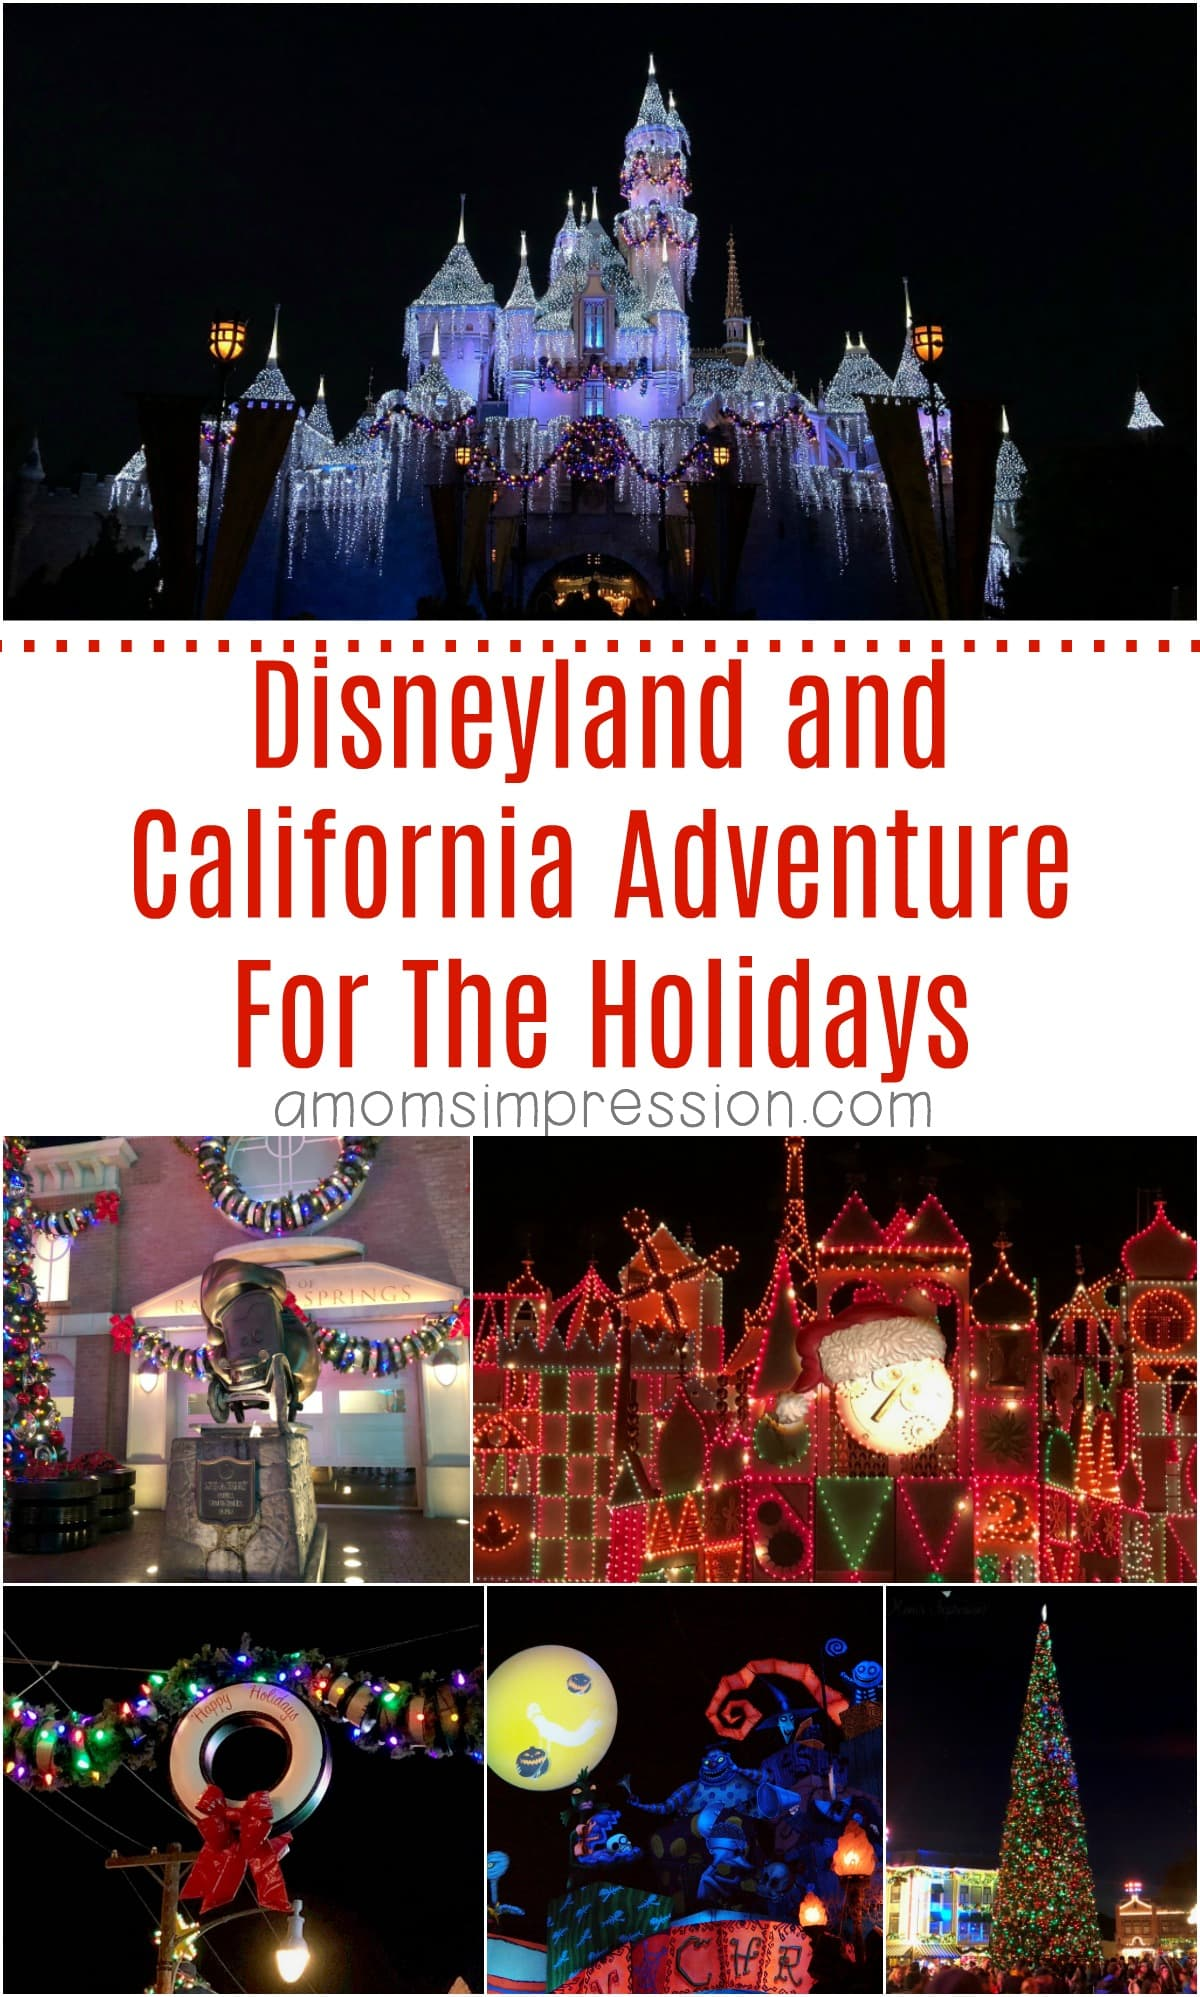 Disneyland and California Adventure for the Holidays